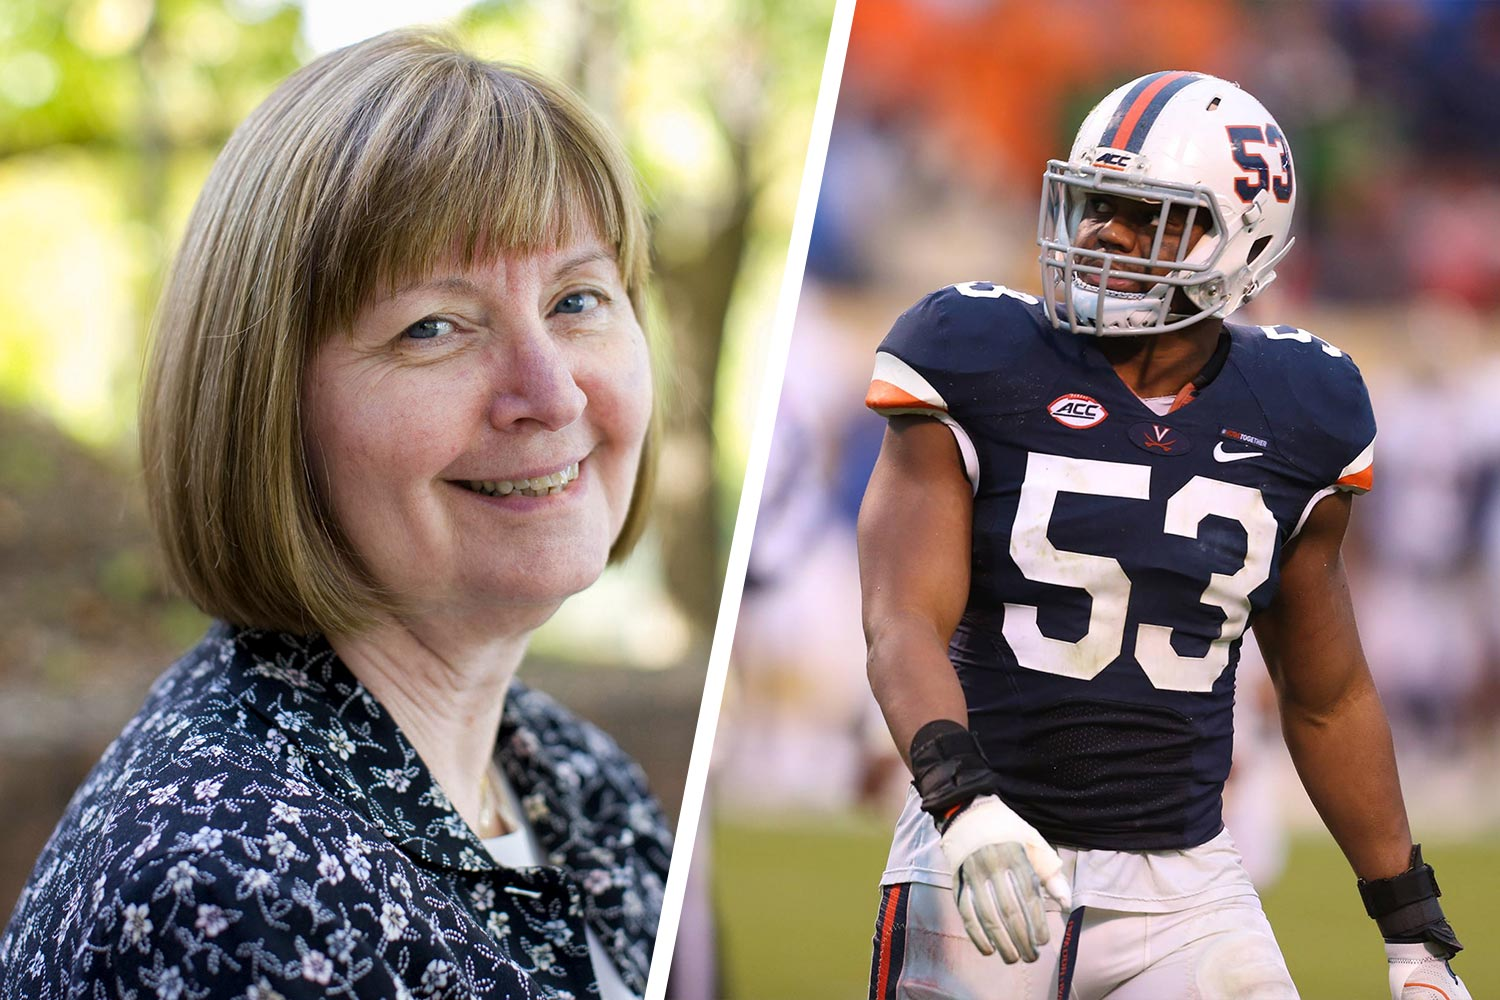 The National Football Foundation is honoring both Carolyn Callahan, UVA's longtime faculty athletics representative, and Cavalier linebacker Micah Kiser.